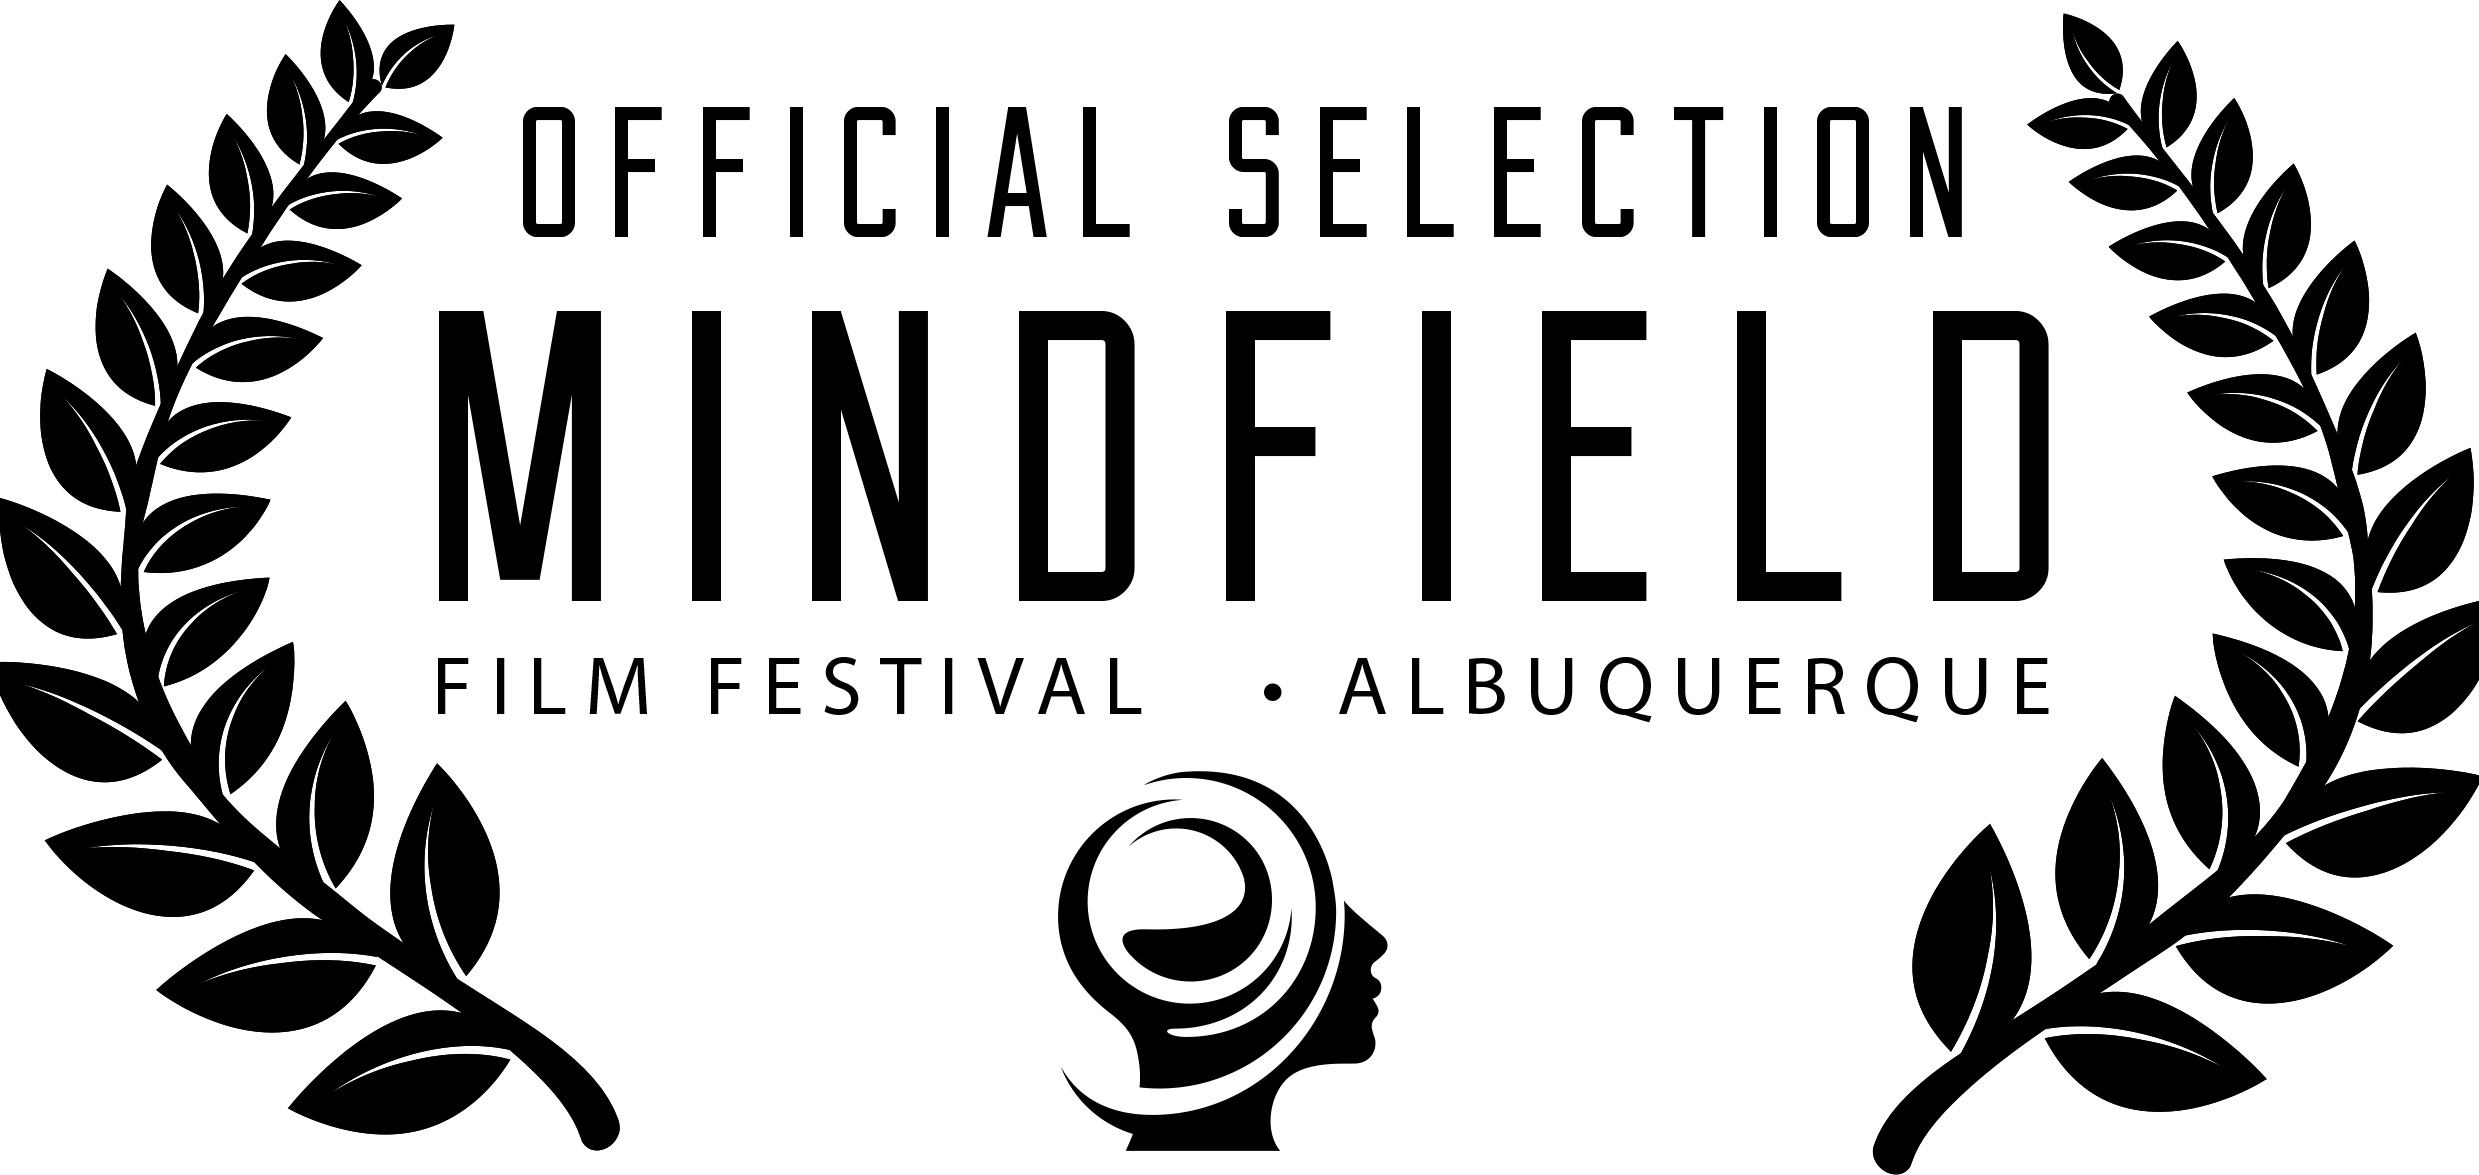 Mindfield ABQ Official Selection Laurel.jpg